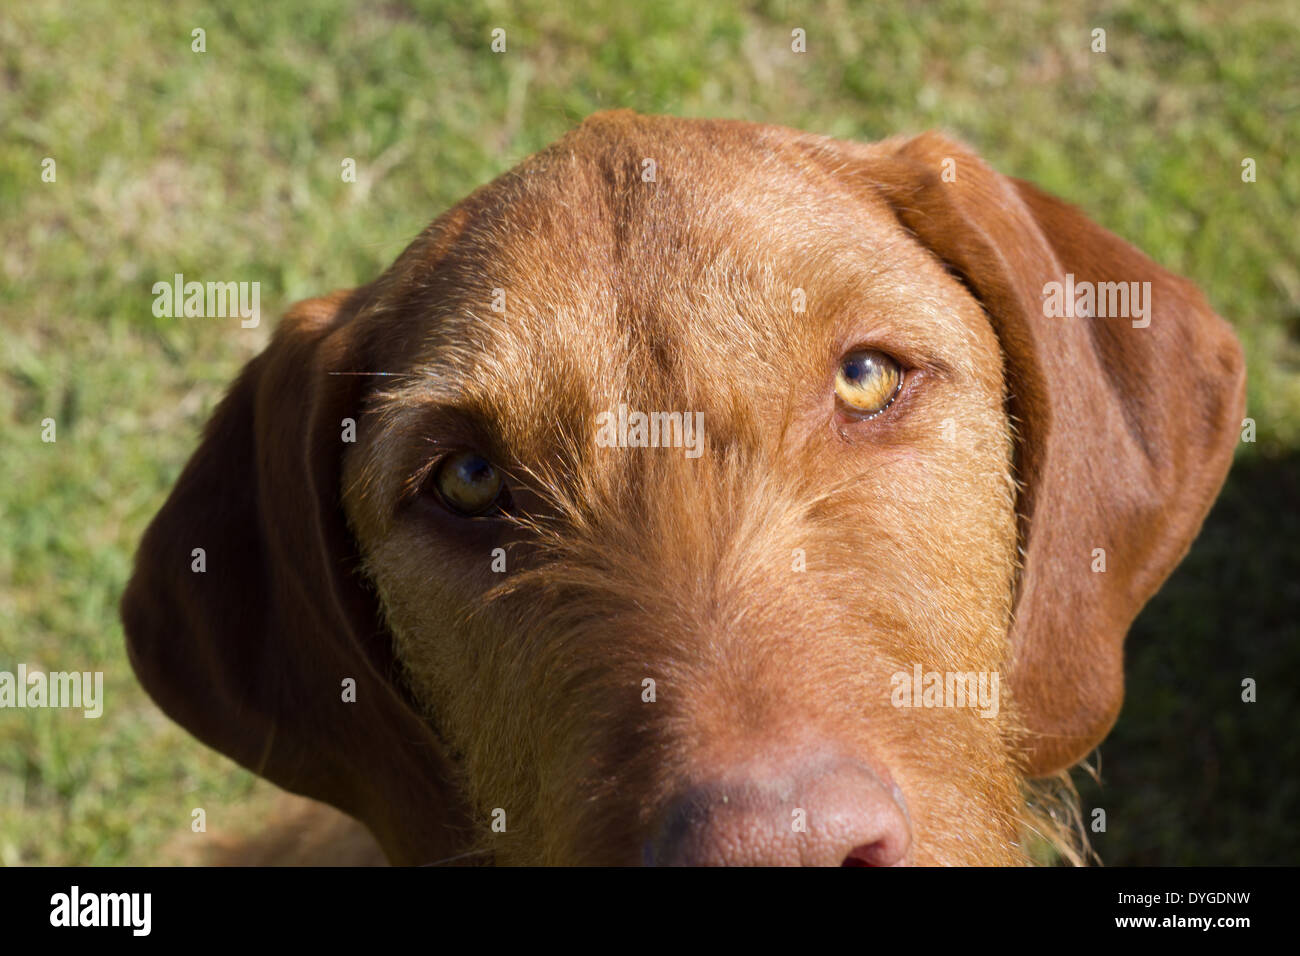 Male Hungarian vizsla, portrait with a background of grass. - Stock Image